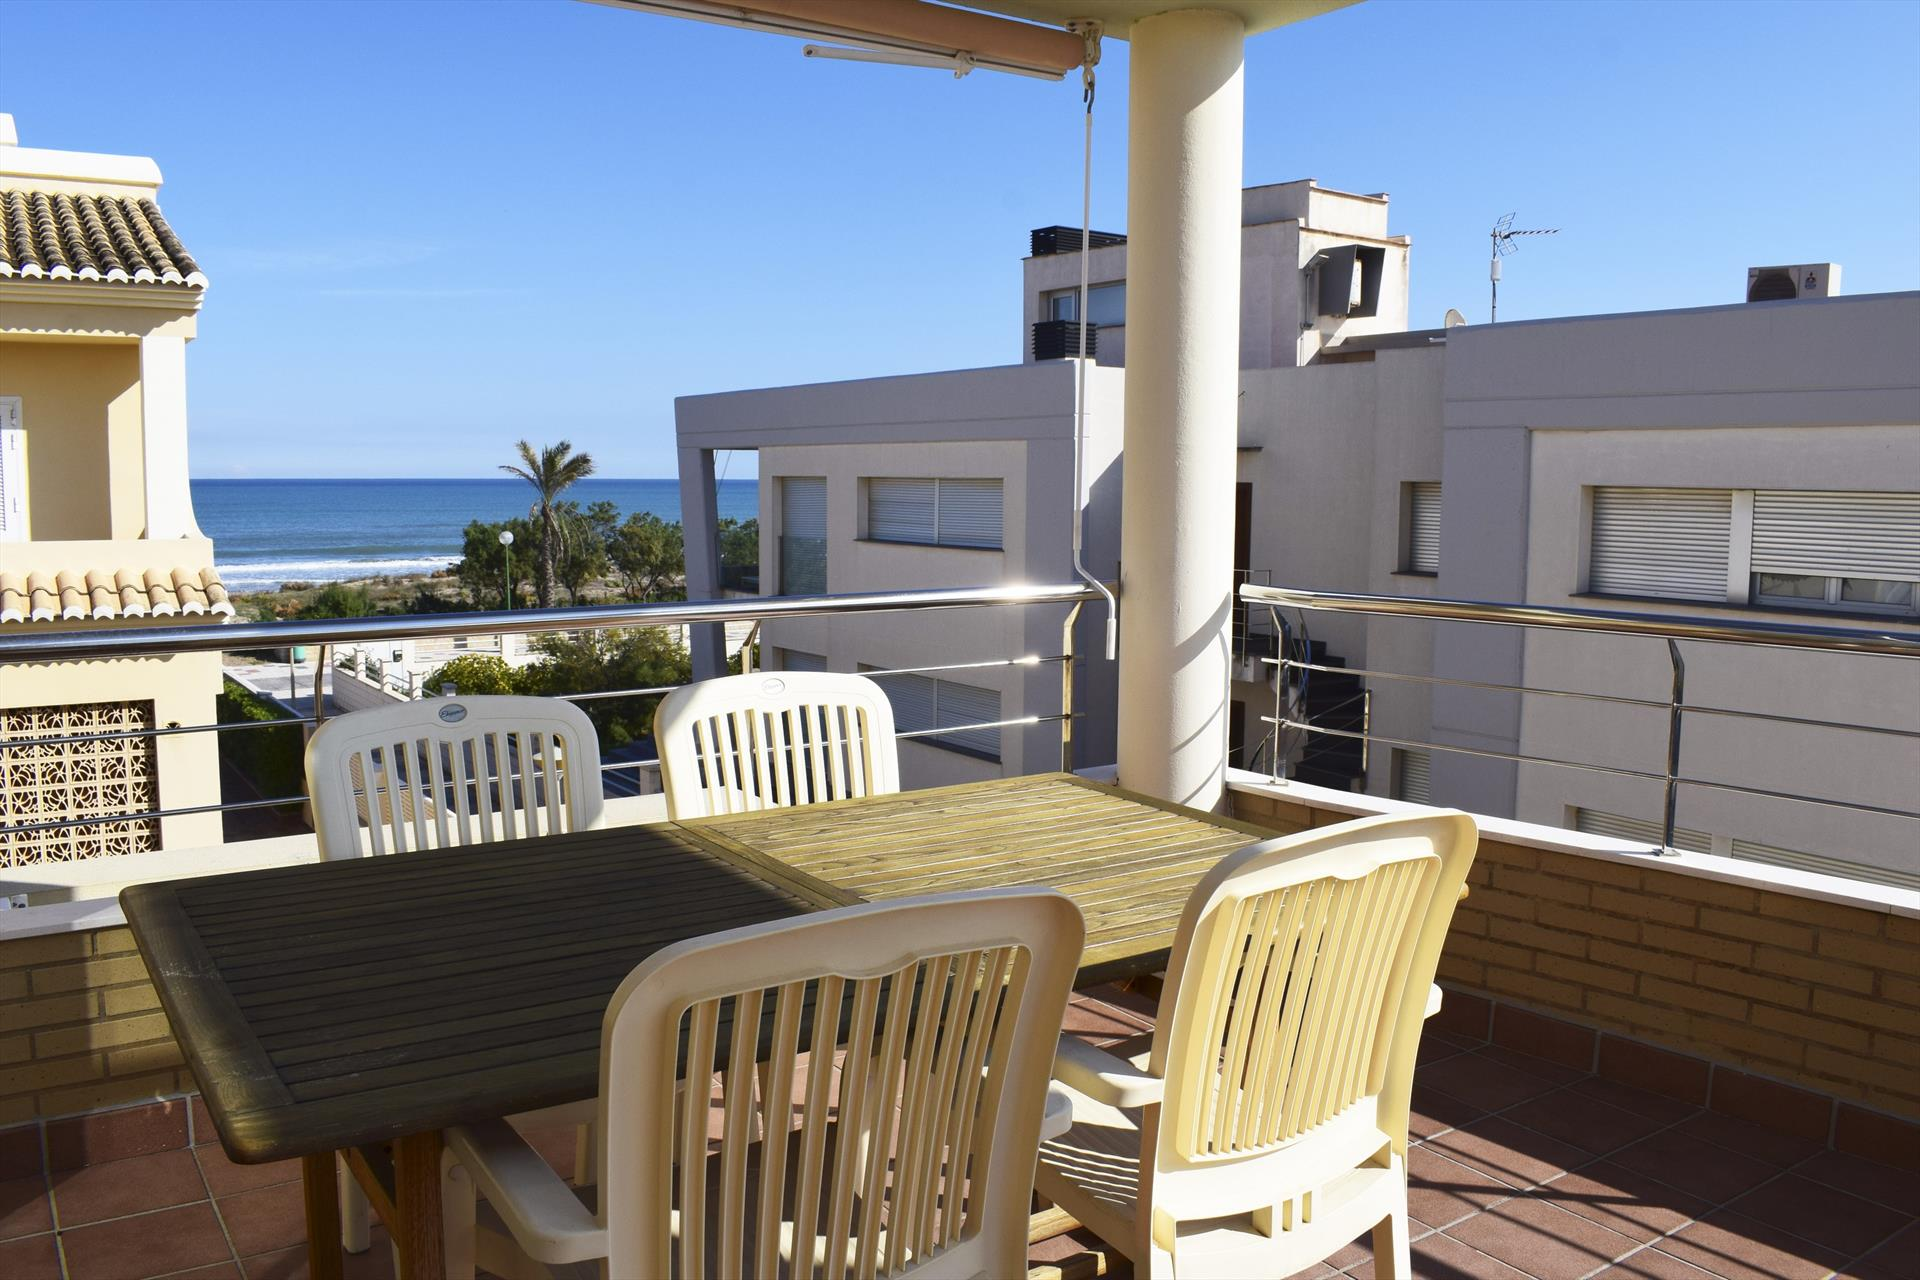 AT2227 Atico Les Barques Sector 5, Modern and comfortable holiday house in Oliva, on the Costa Blanca, Spain for 4 persons.....